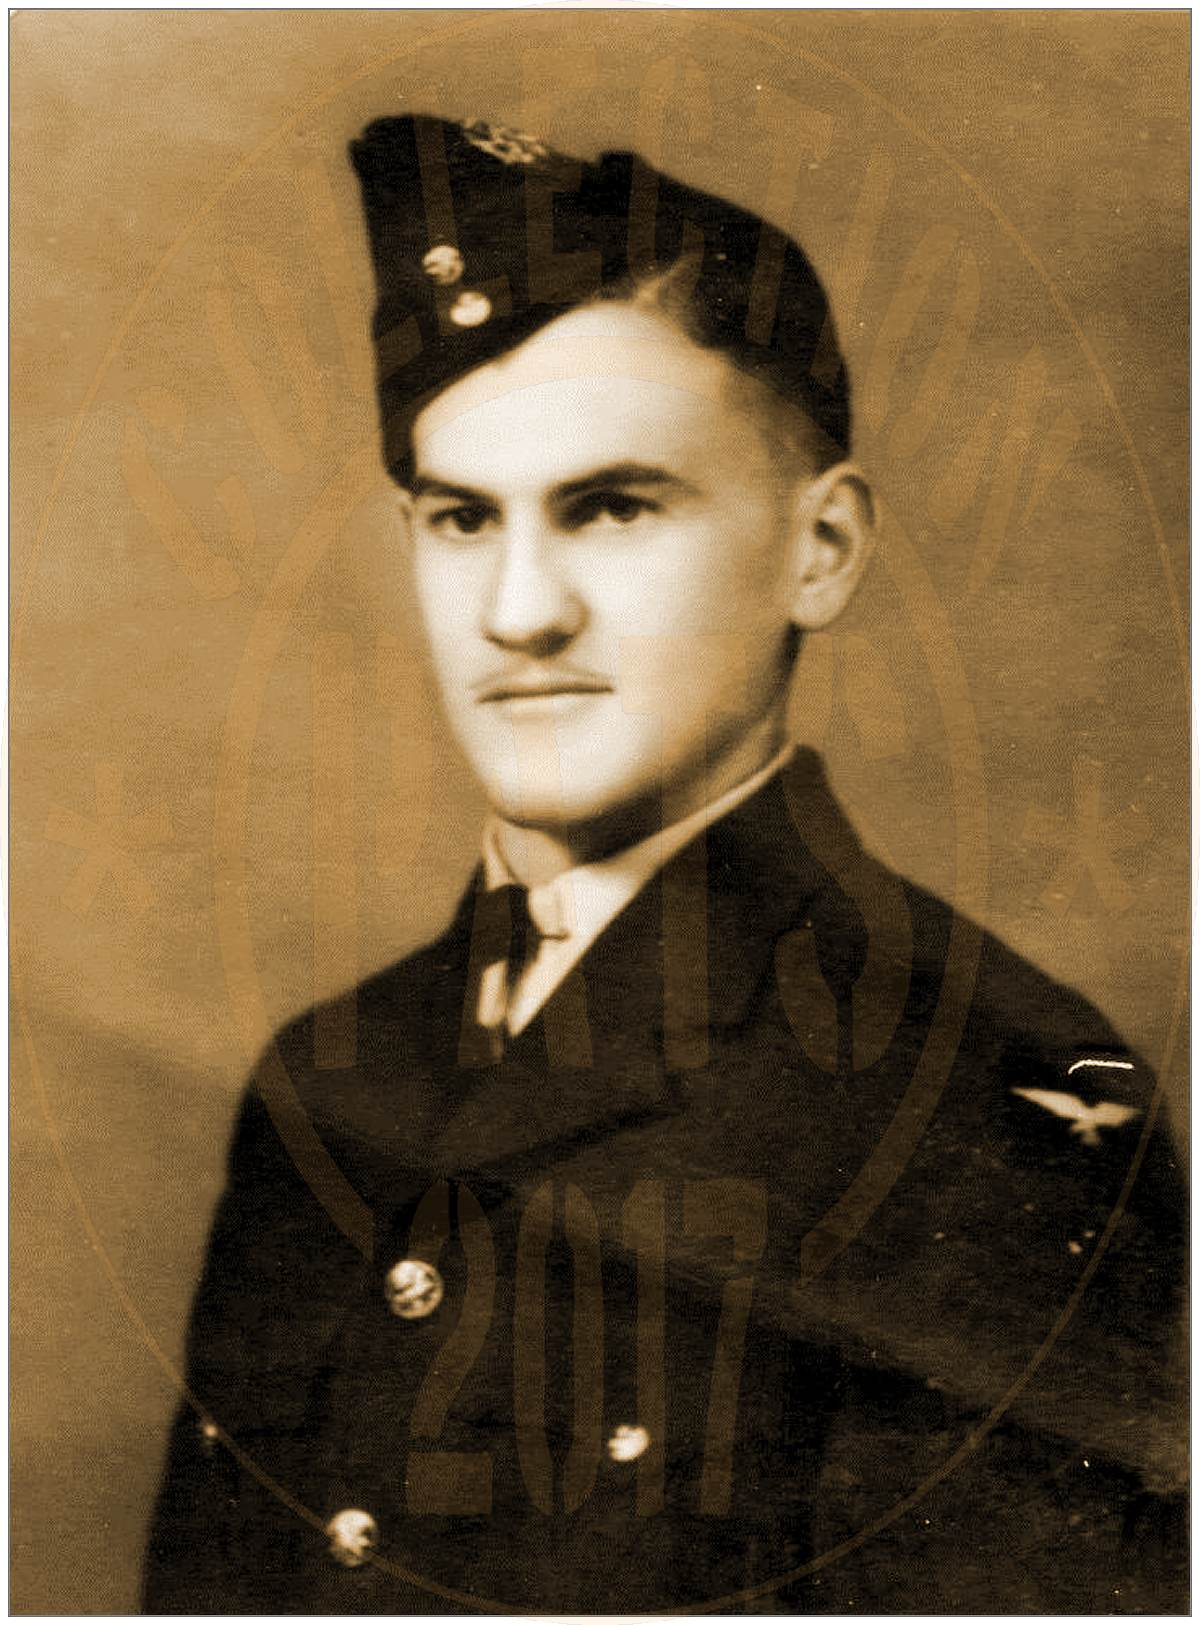 F/Sgt. Stanley Finace Mattoon - RCAF - portrait